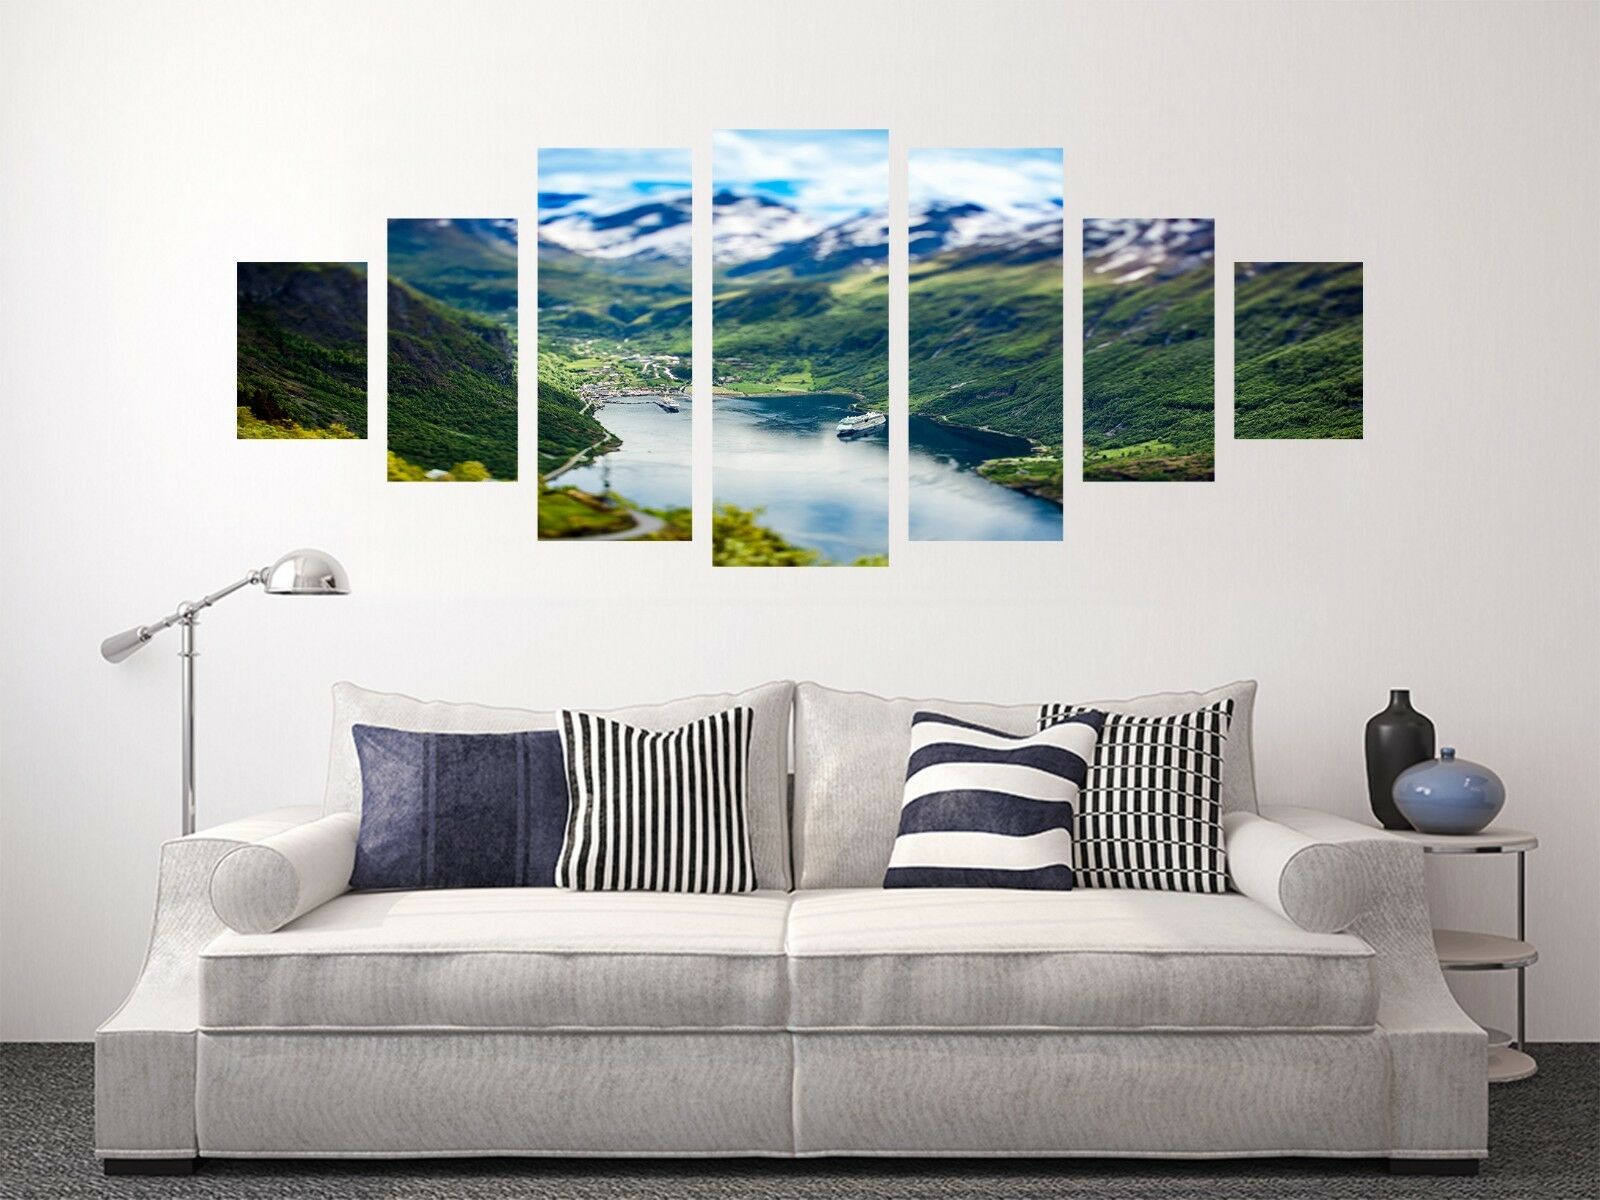 3D Mountain Green 88 Unframed Print Wall Paper Decal Wall Deco Indoor AJ Jenny